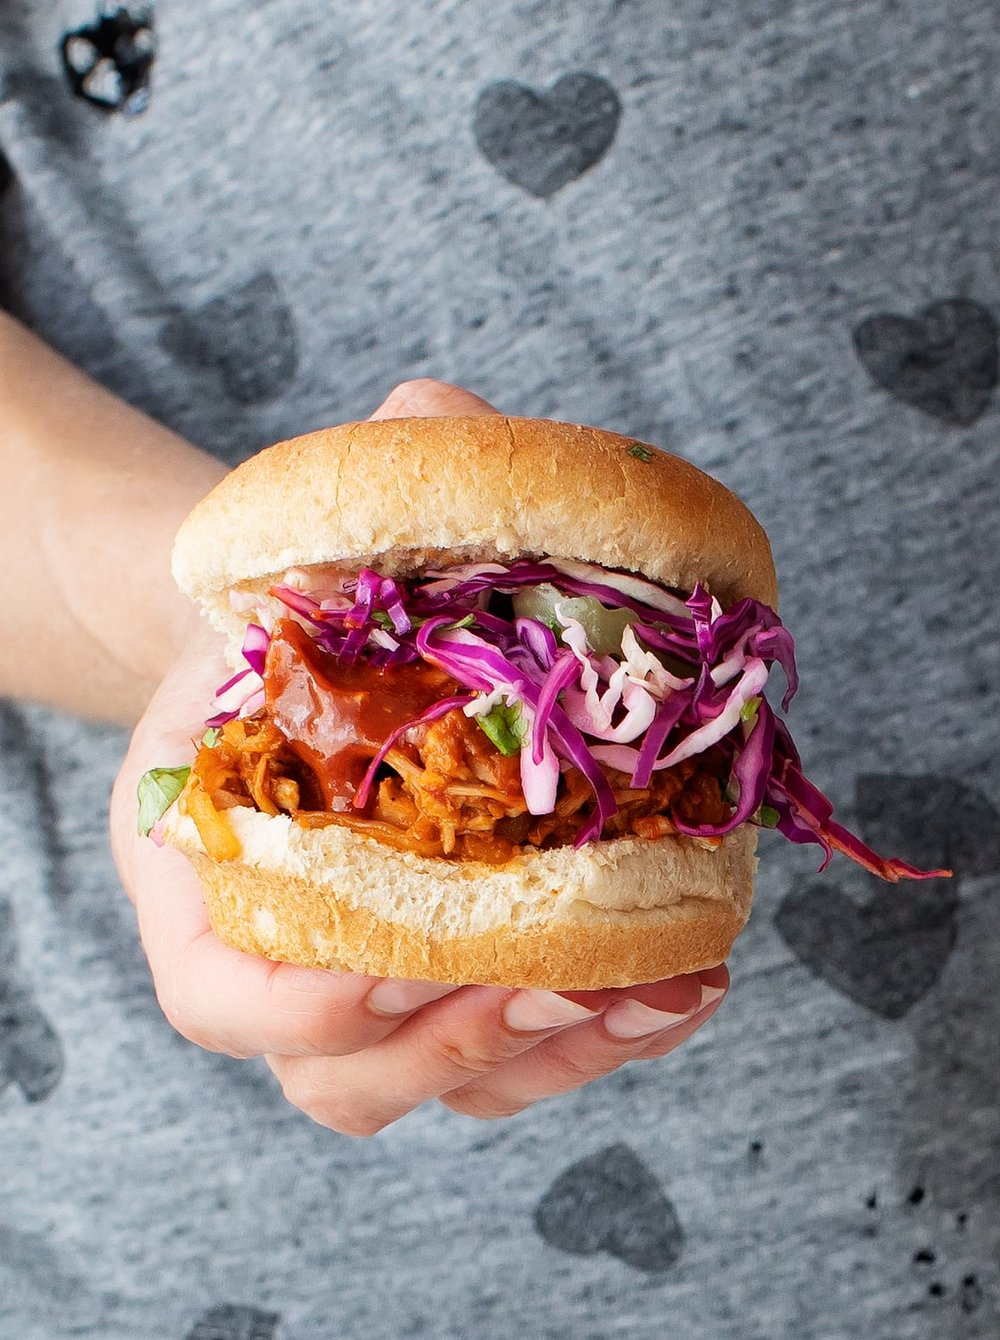 BBQ Jackfruit Sandwiches - With canned jackfruit more and more prevalent, this is an incredibly easy recipe to throw together on a weeknight.